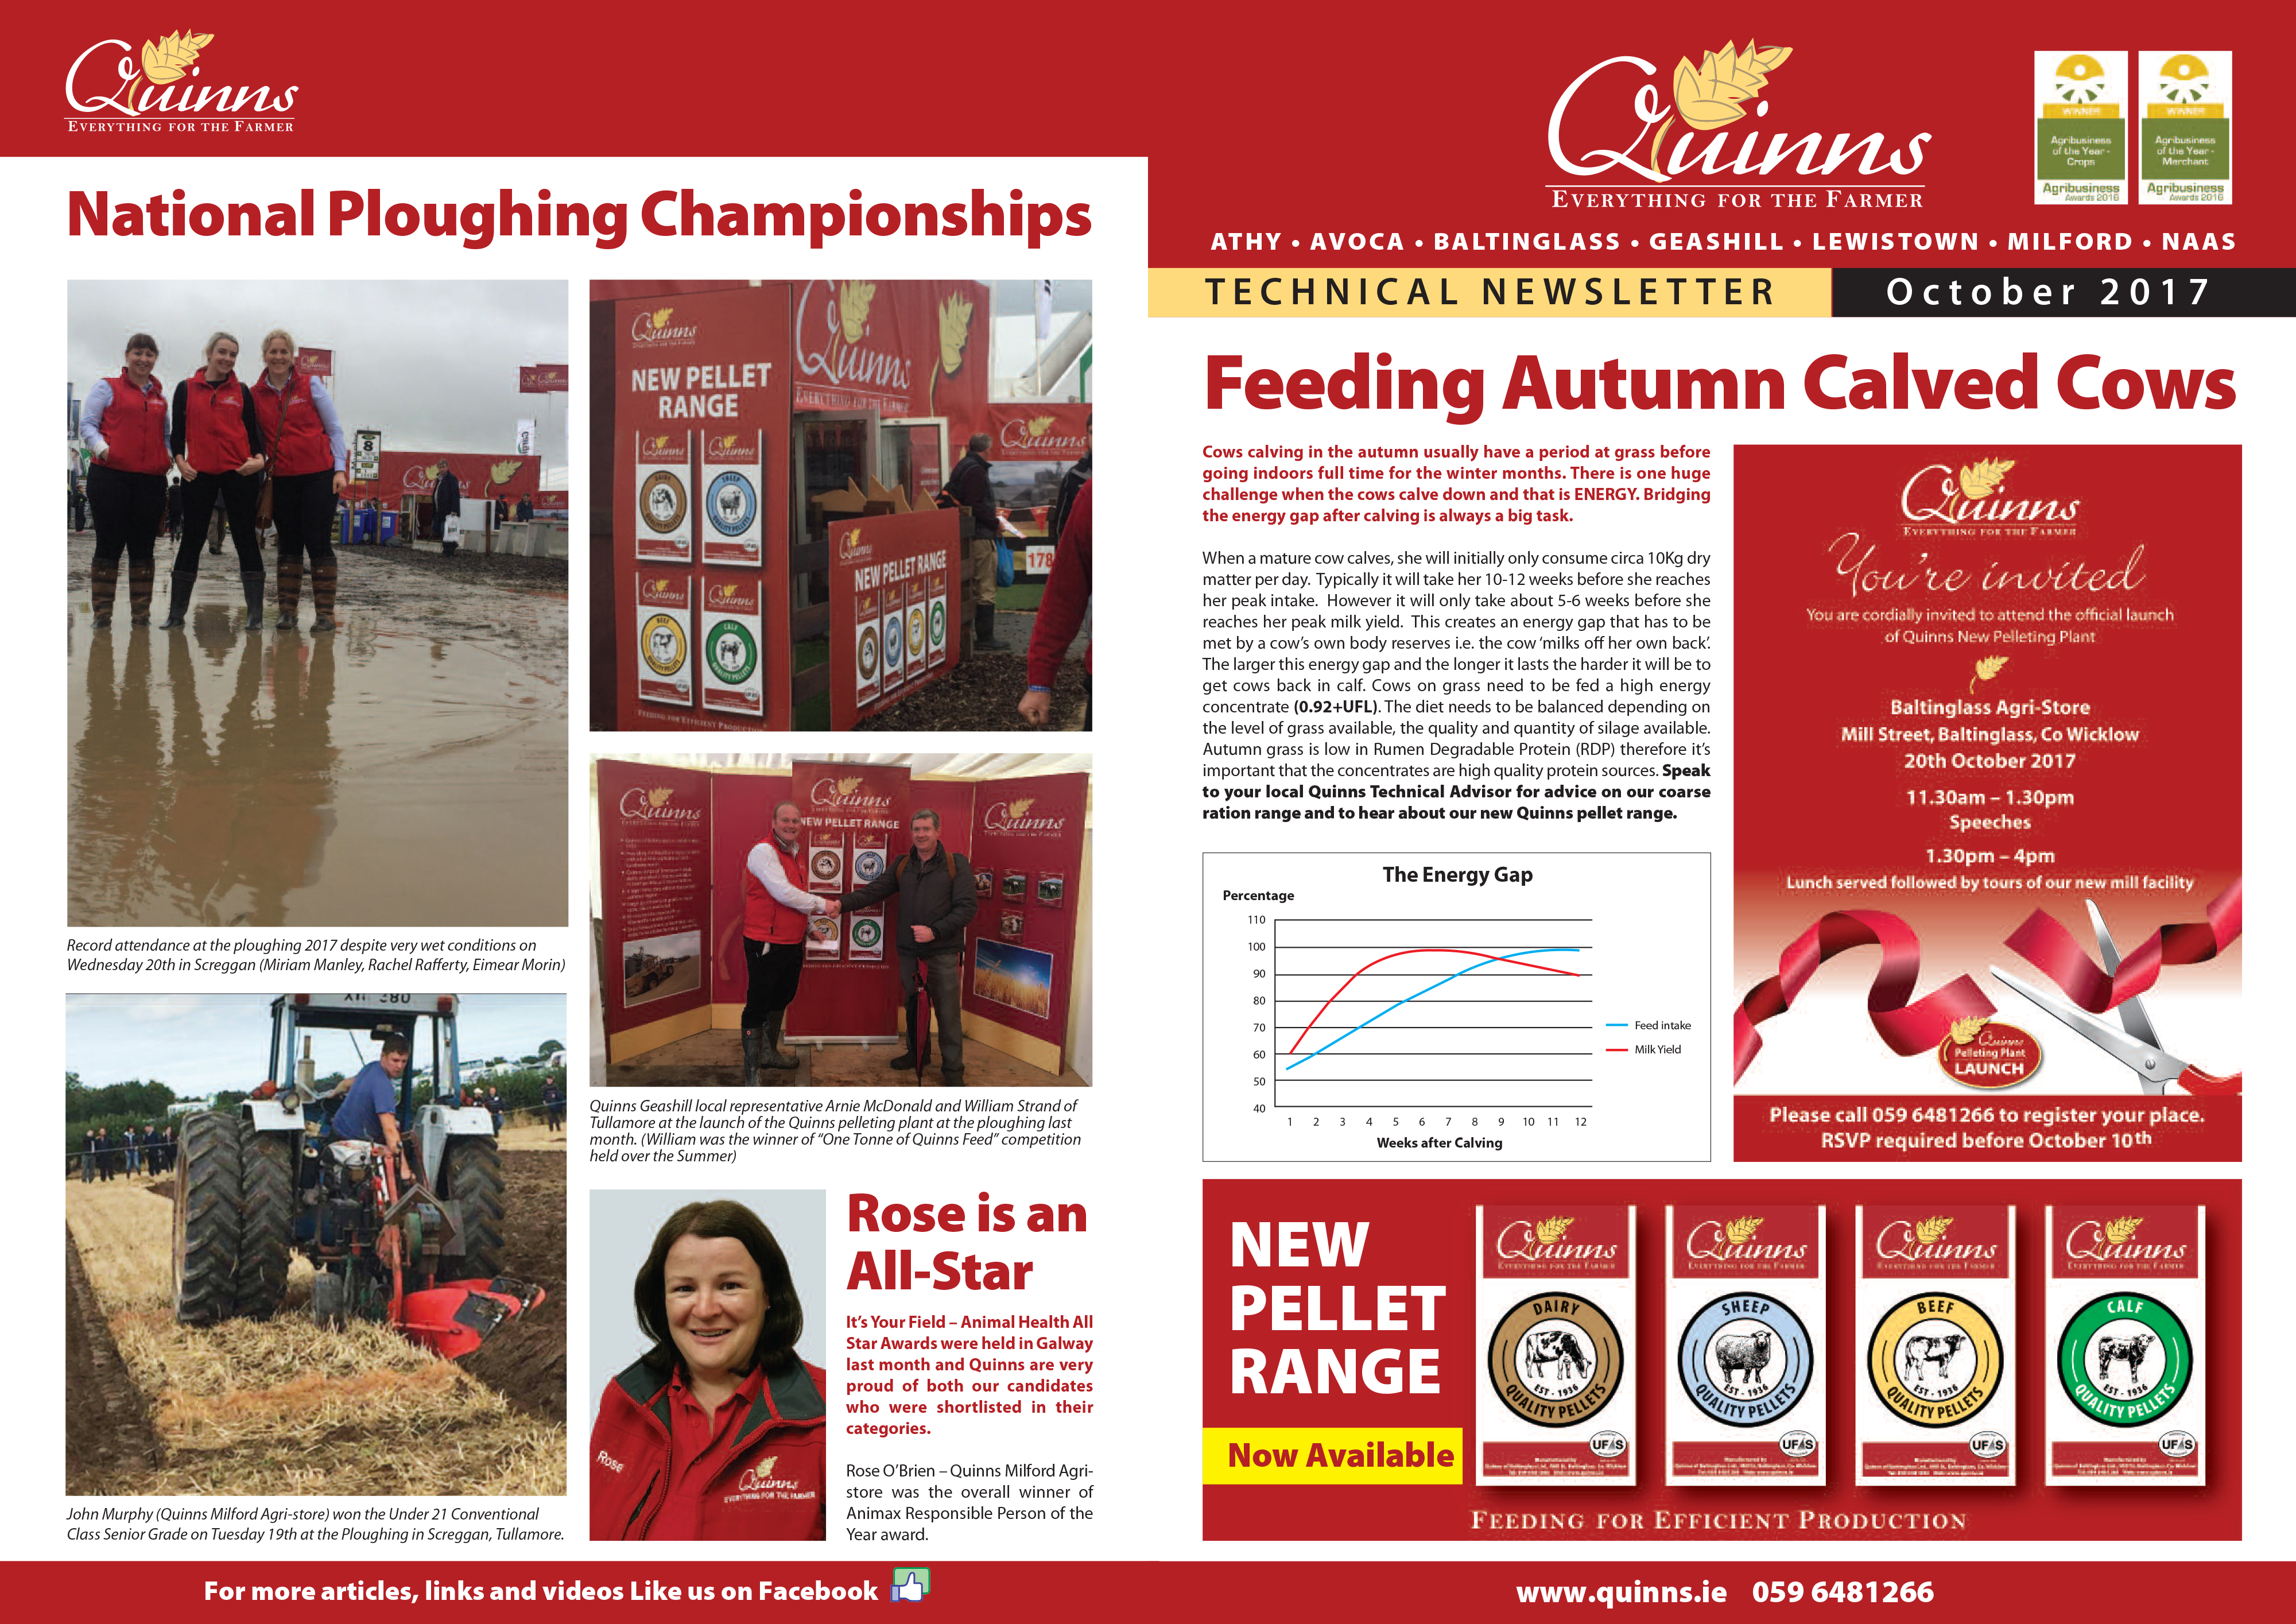 Quinns newsletter October_17